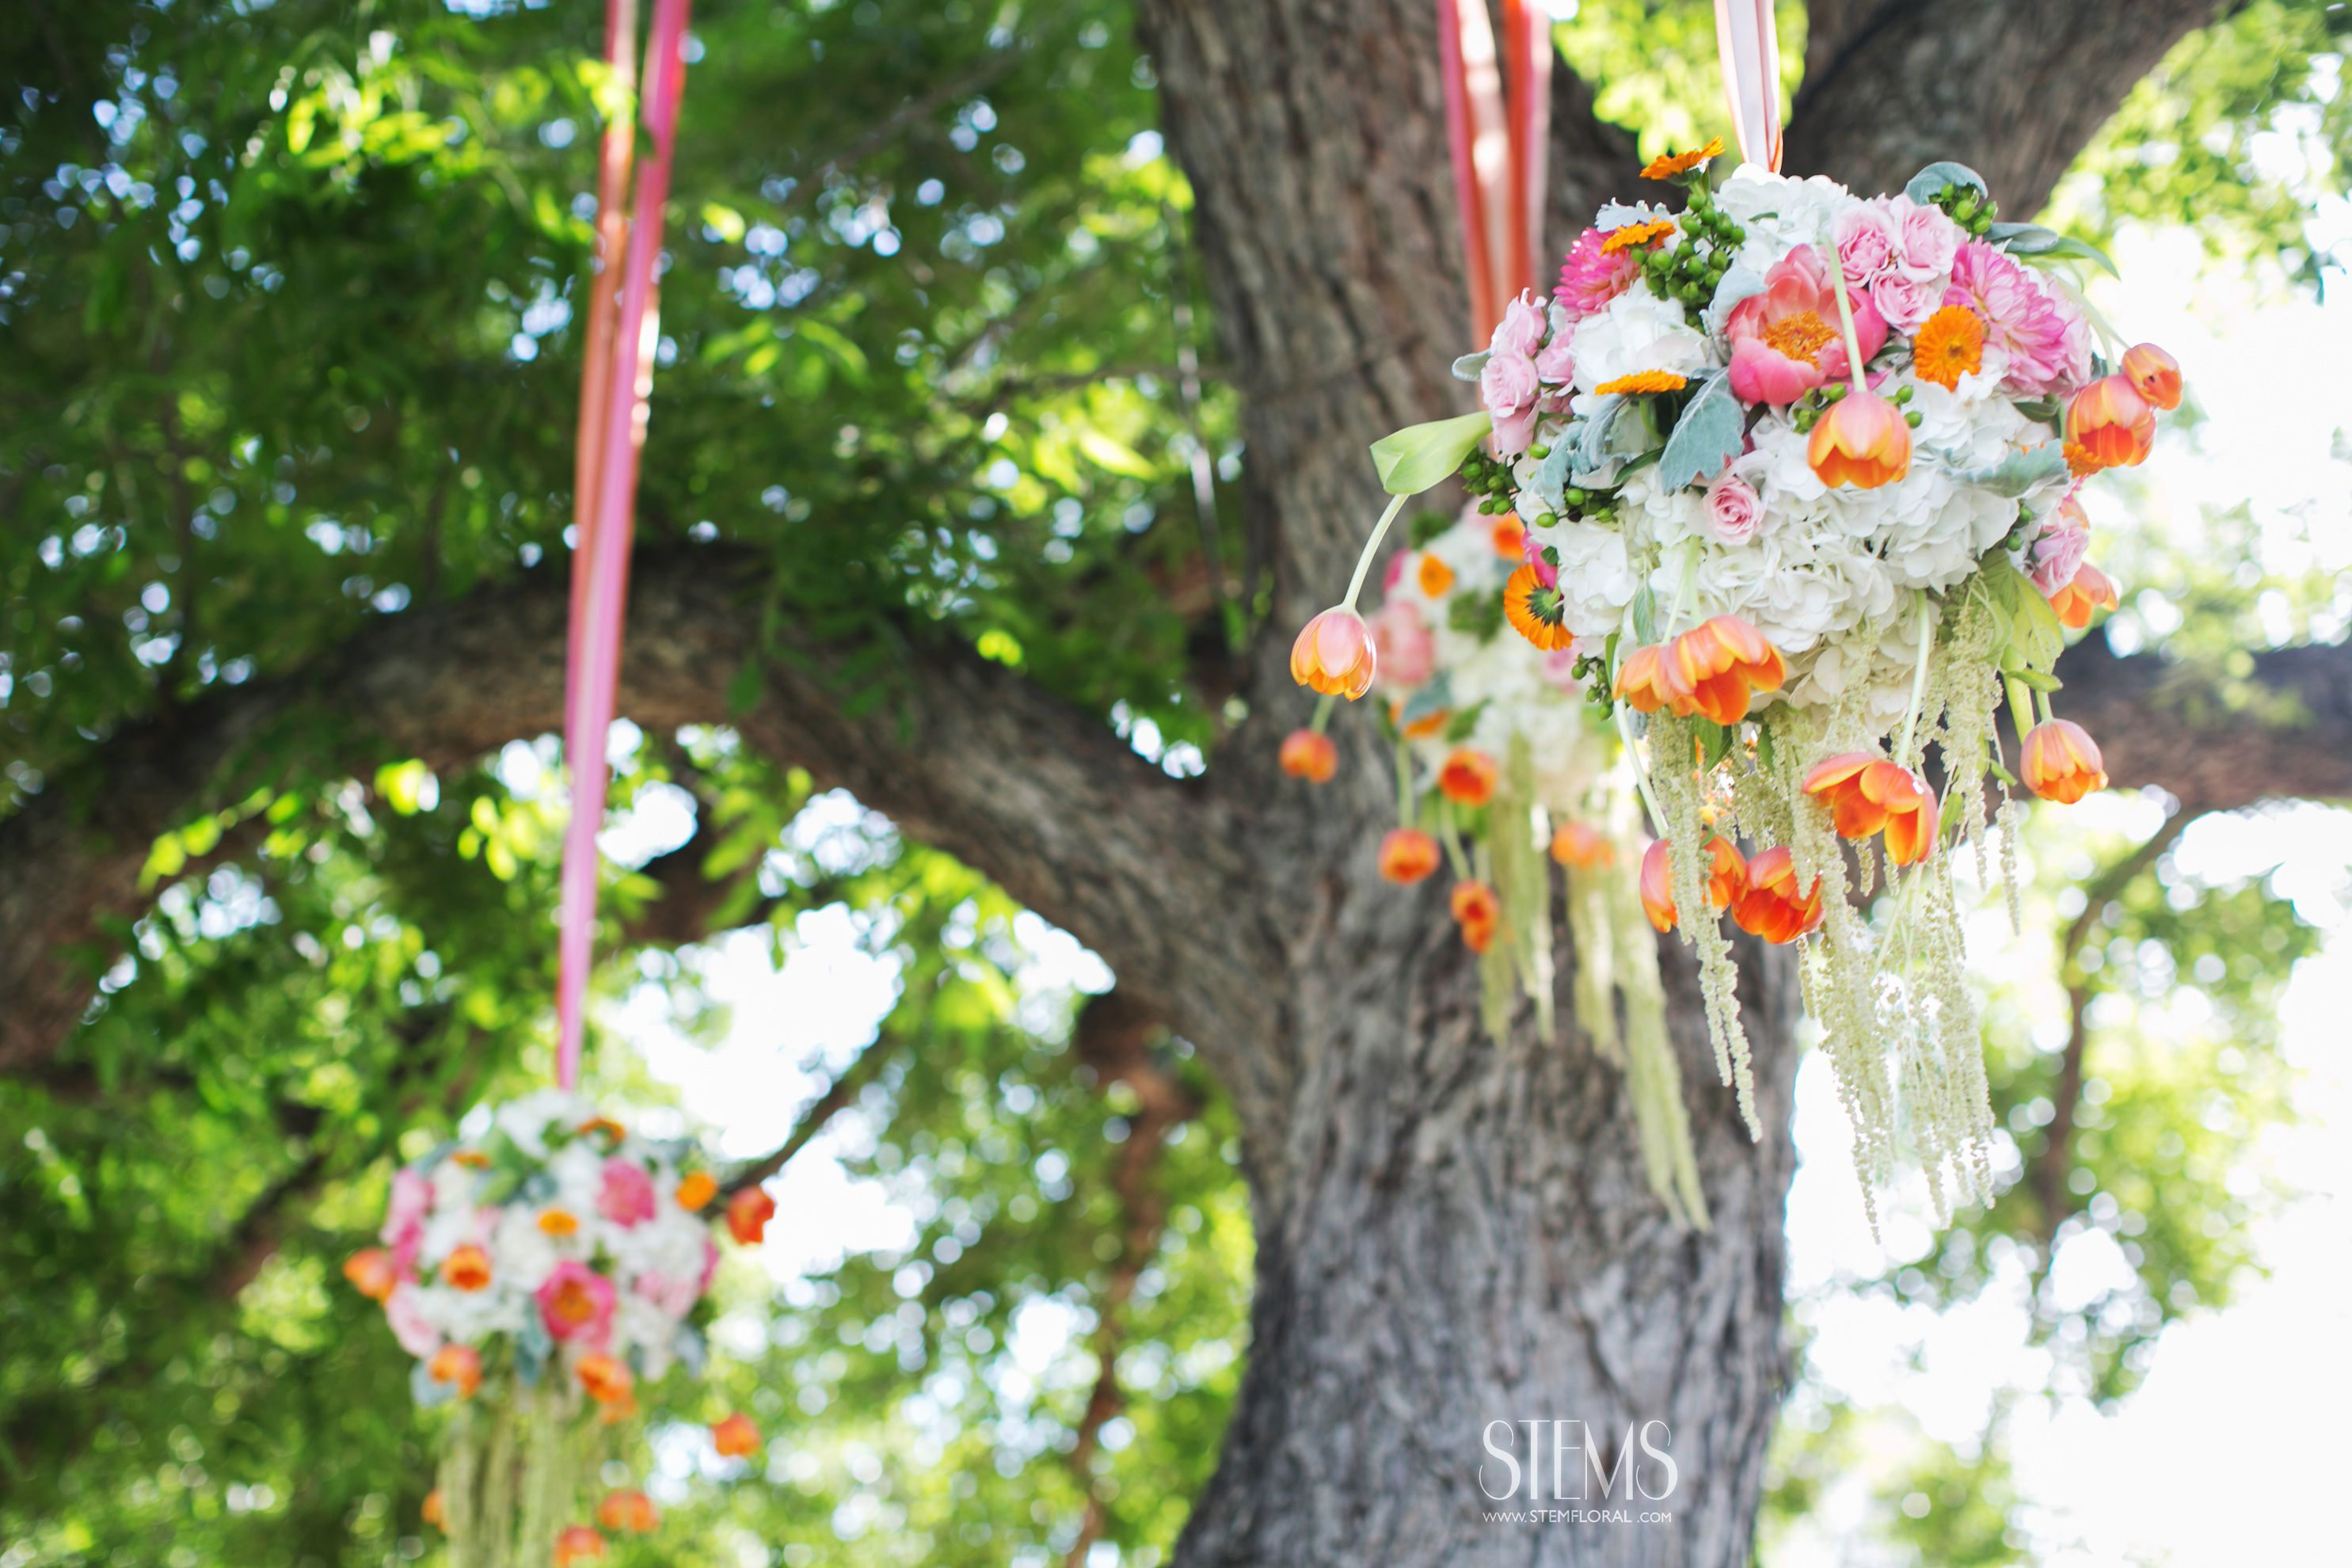 Wedding decorations hanging from trees  emfloral I photome I rrmansion Barr